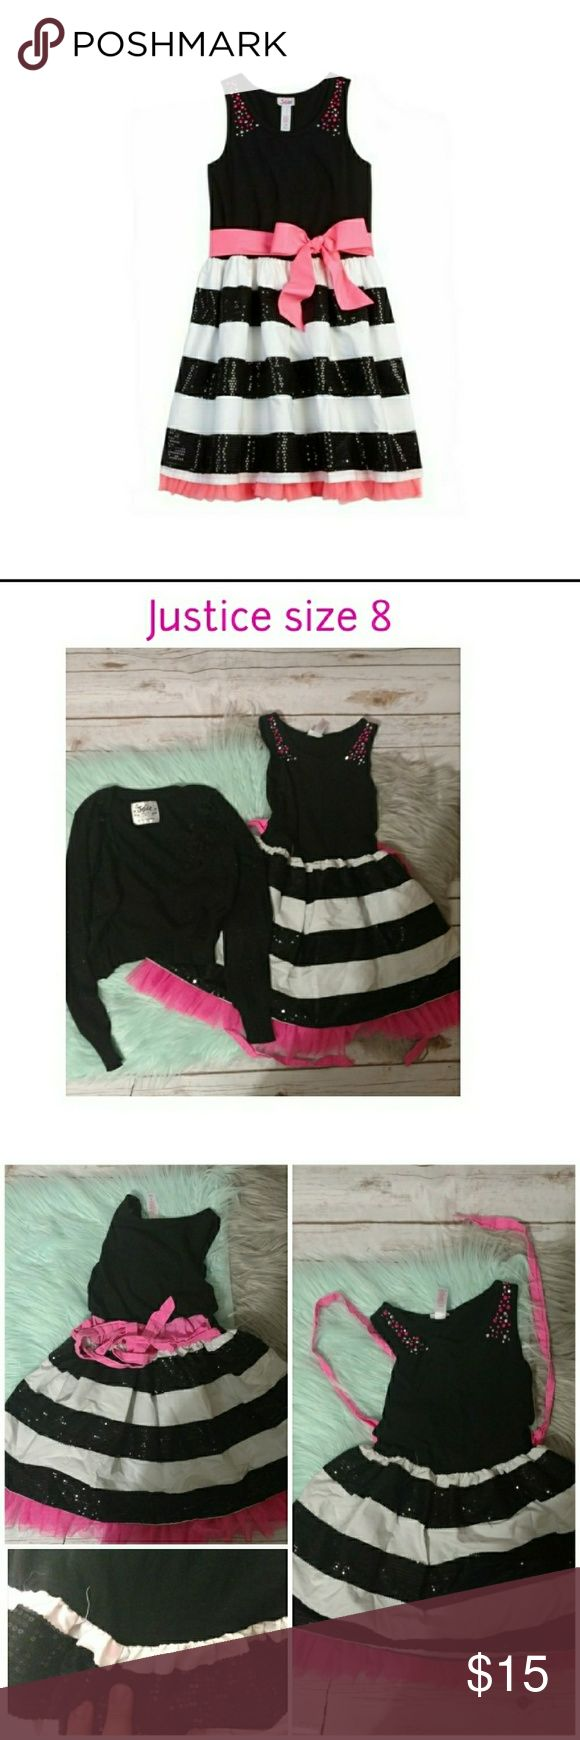 Justice size 8 dress shrug bundle pink black white Gorgeous pink, black, and white sequined dress.  Comes with a shrug that has flower details in size 8 from Justice for girls.  The white stripe closest to the body has a pink spot from dye run. Justice Dresses